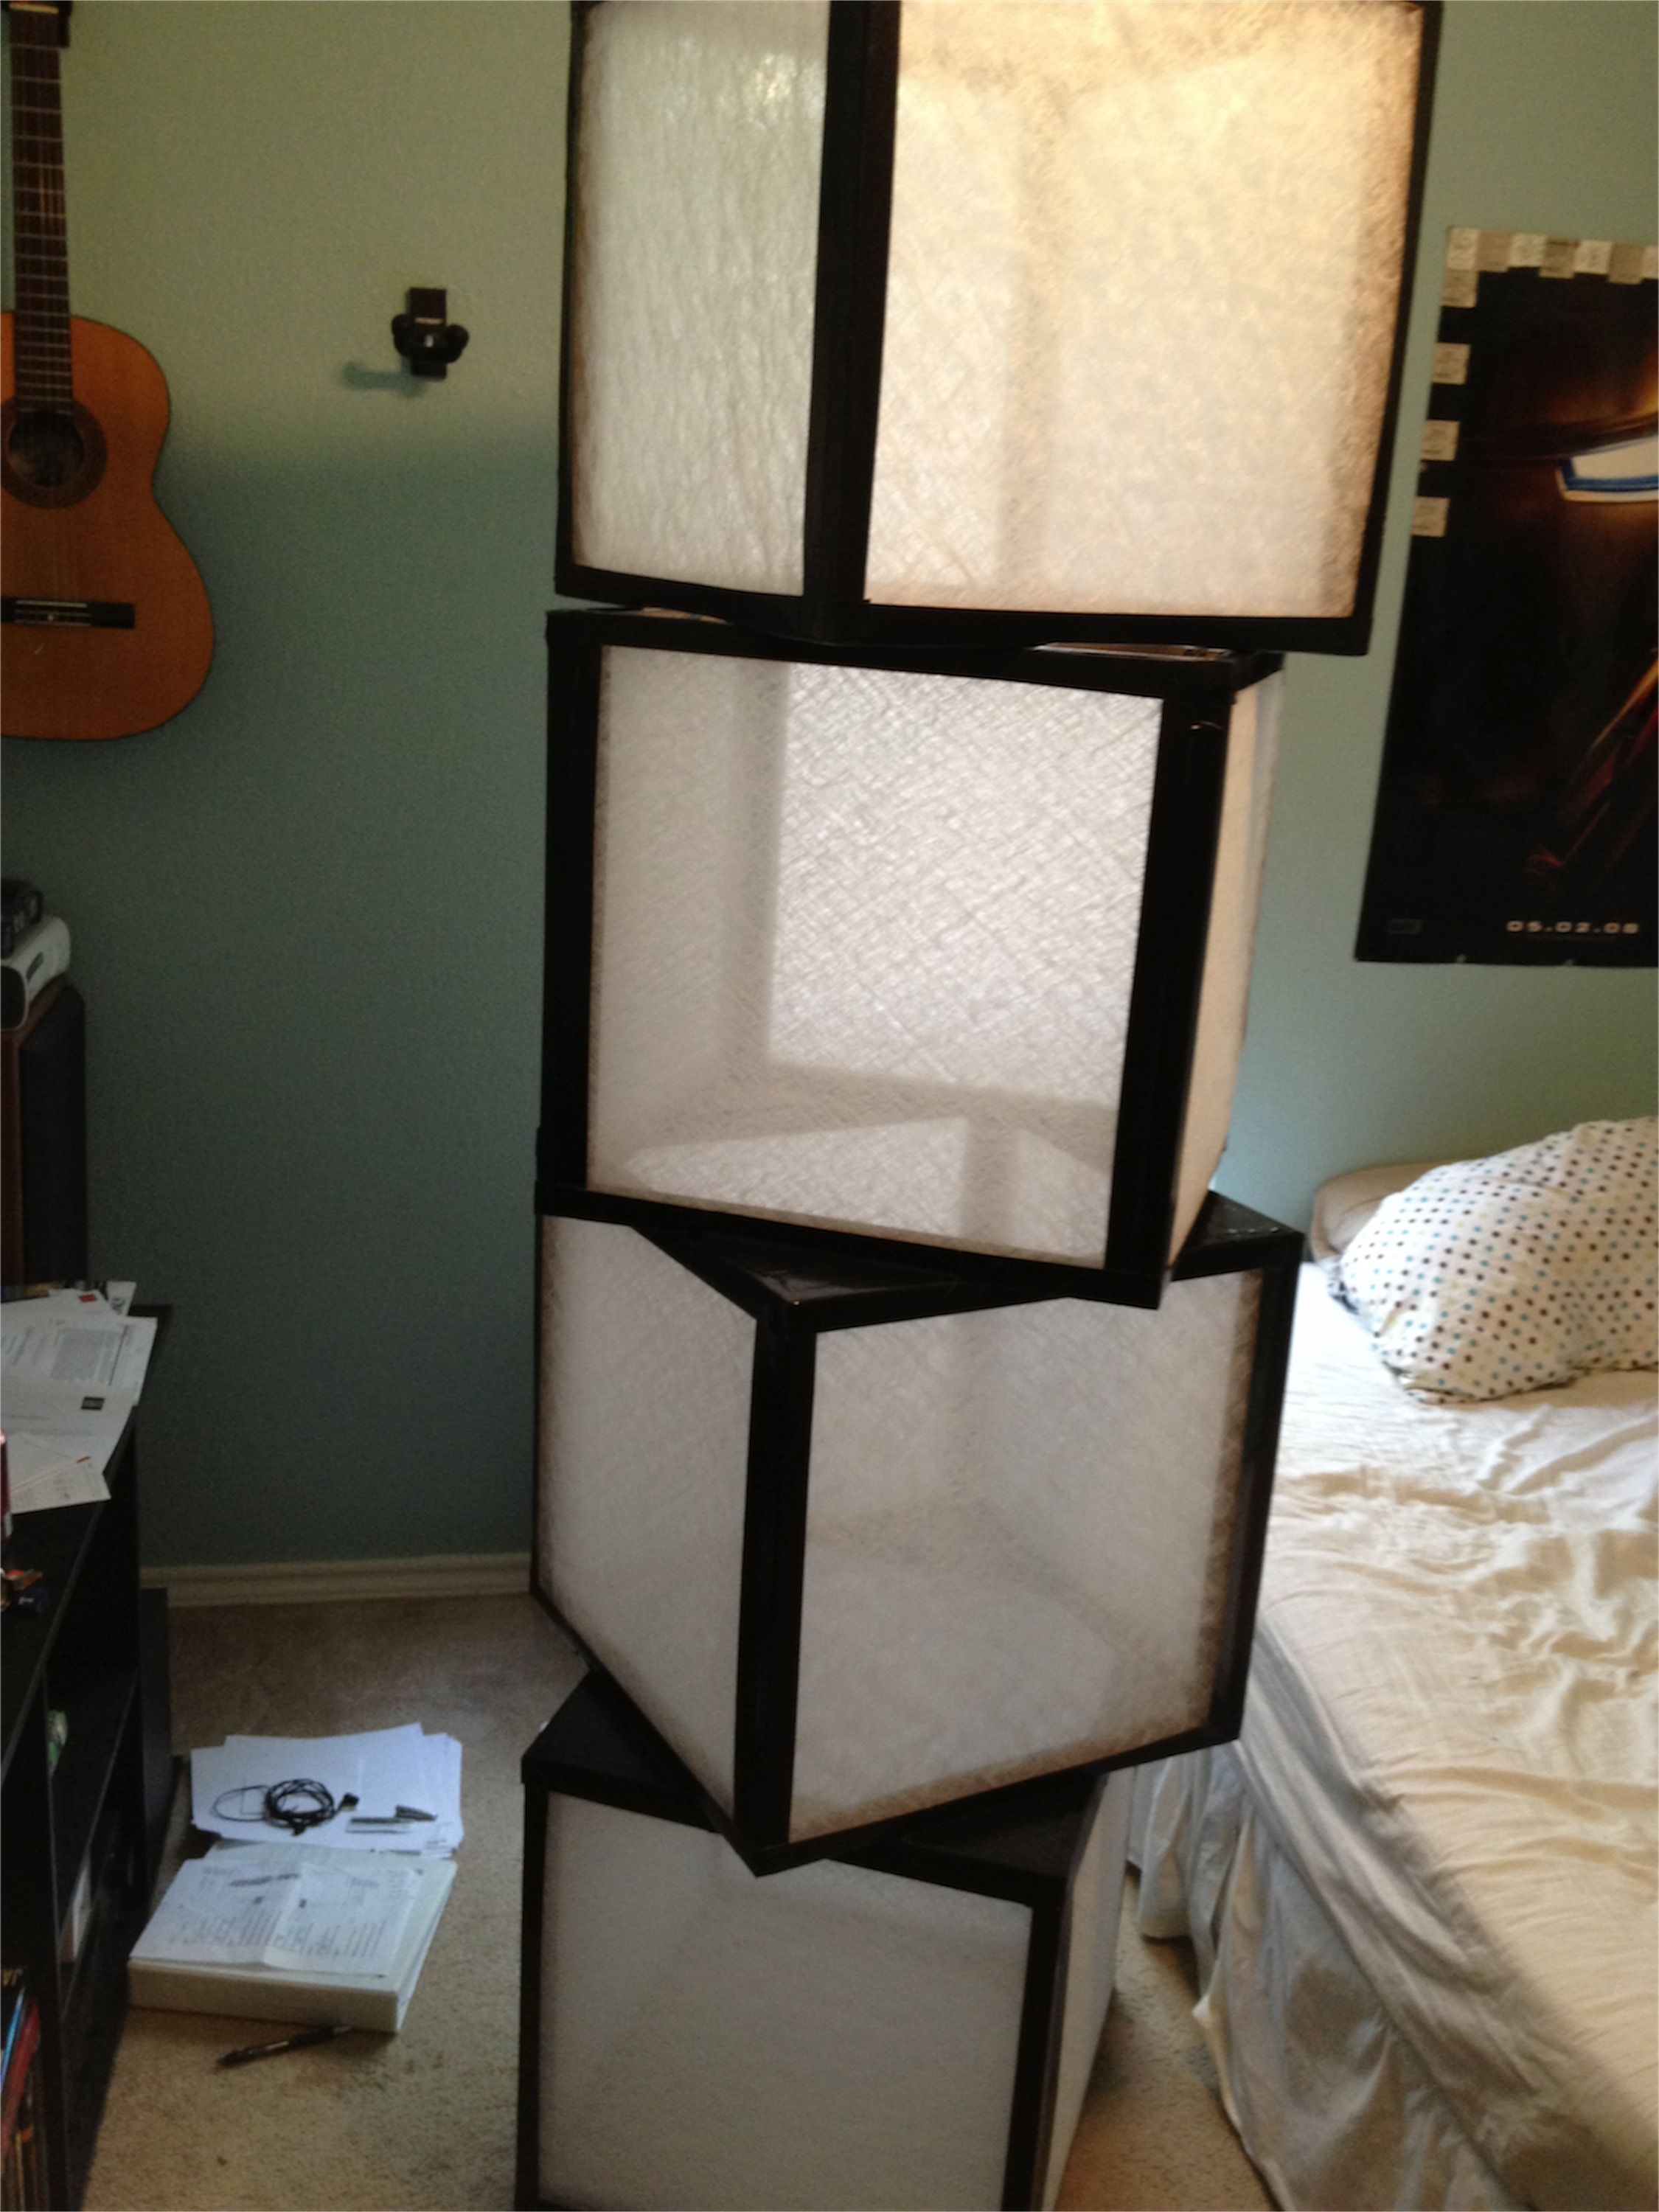 Ac Filters Orlando Floor Or Table Lamp Diy With Furnace Filters And Duct Tape